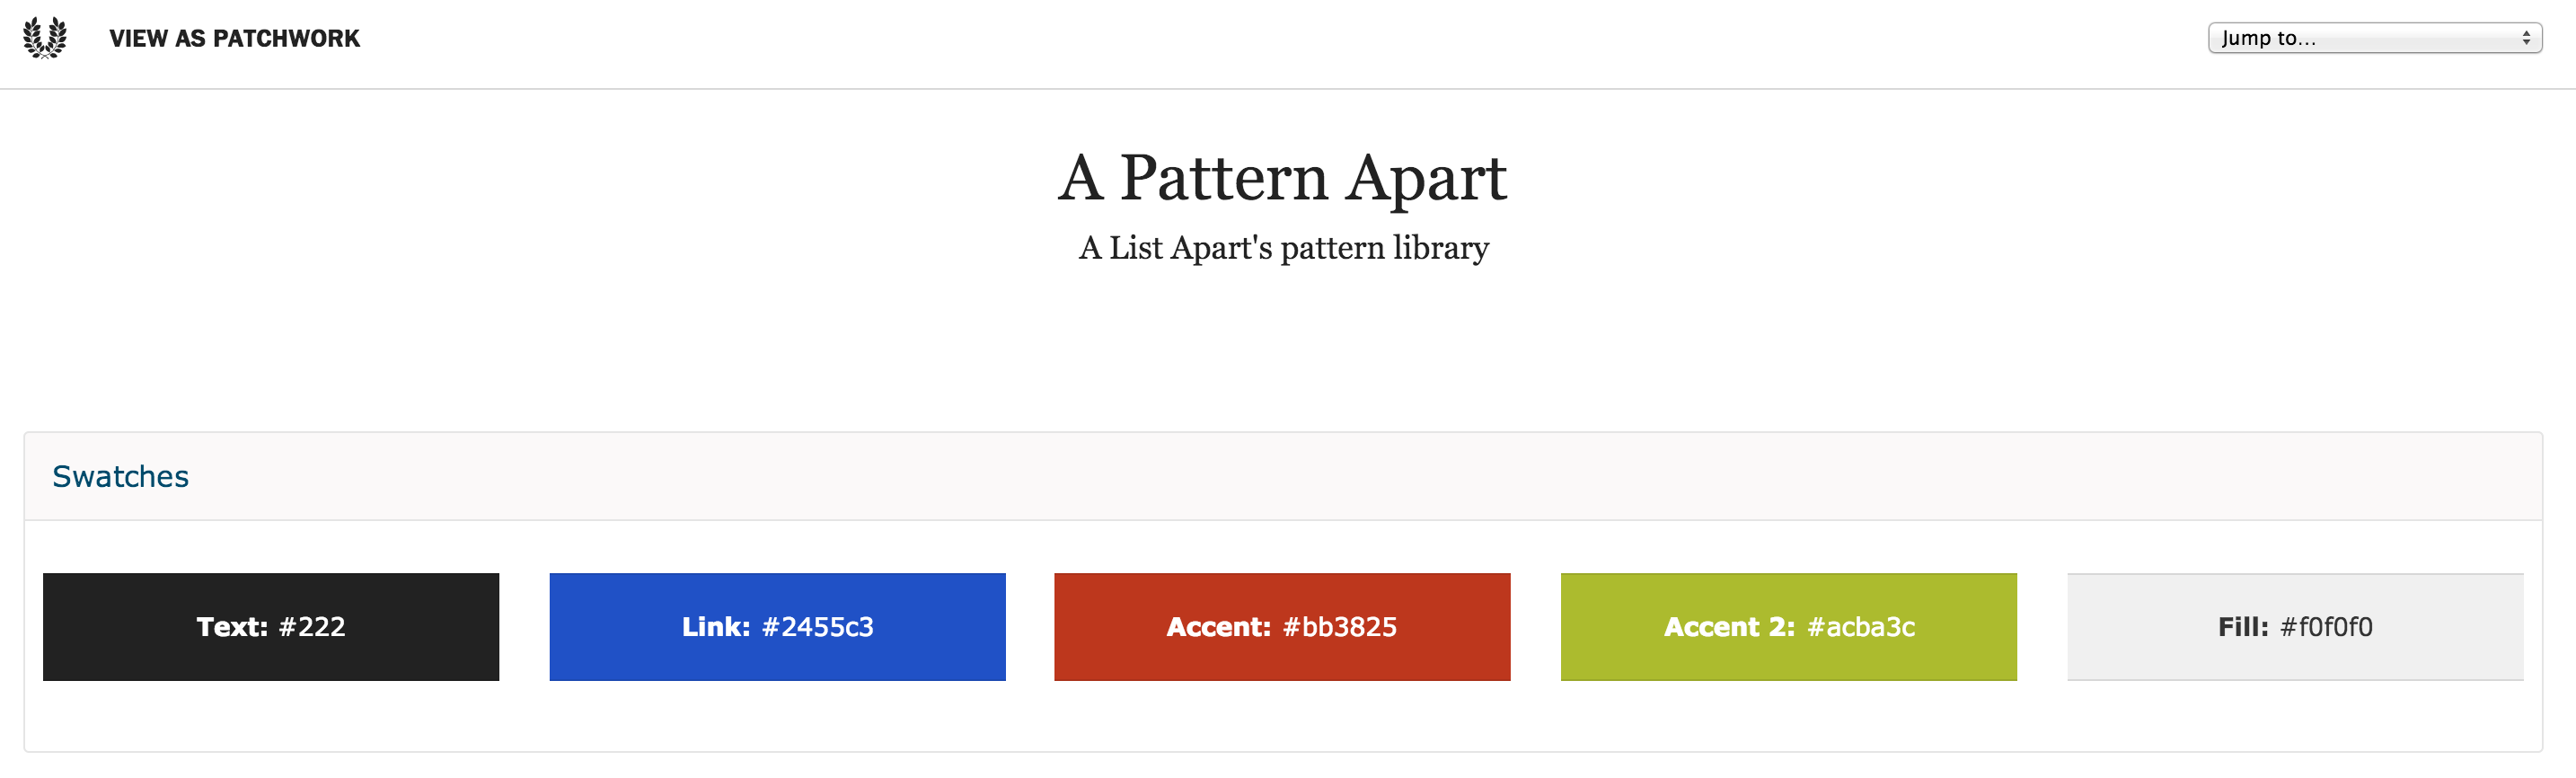 A_List_Apart_Pattern_Library